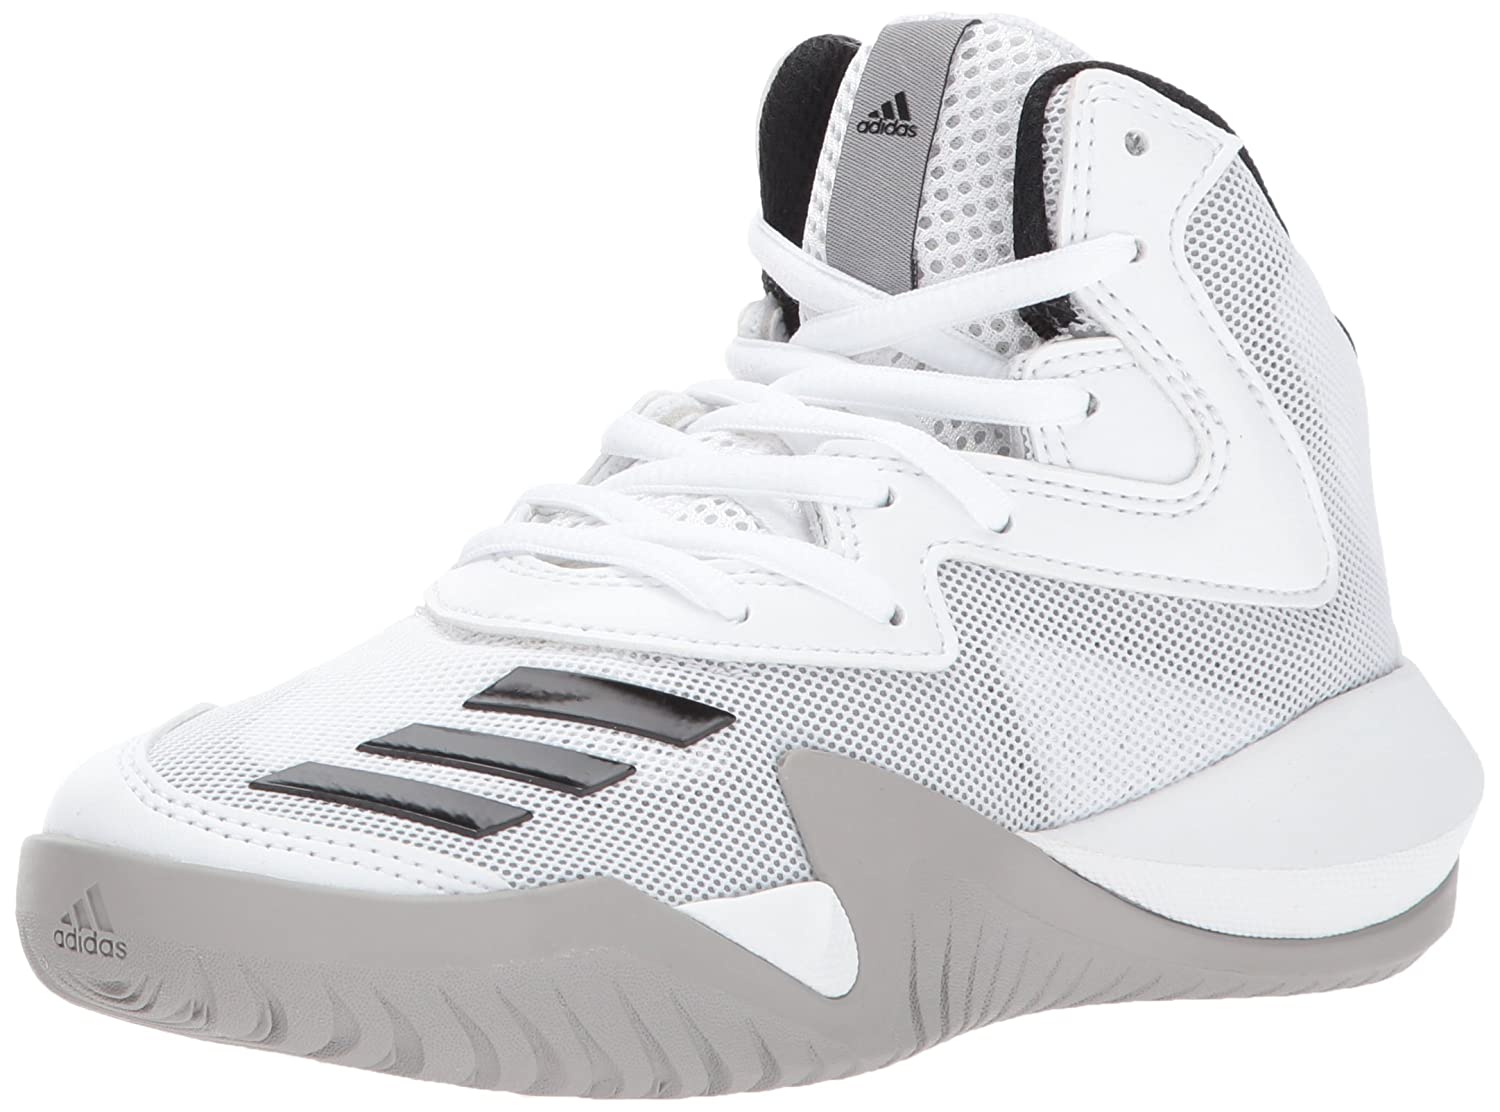 best service 59594 d9fa0 Amazon.com  adidas Kids Crazy Team K Basketball Shoes, WhiteBlackMedium  Solid Grey, (3.5 M US)  Basketball